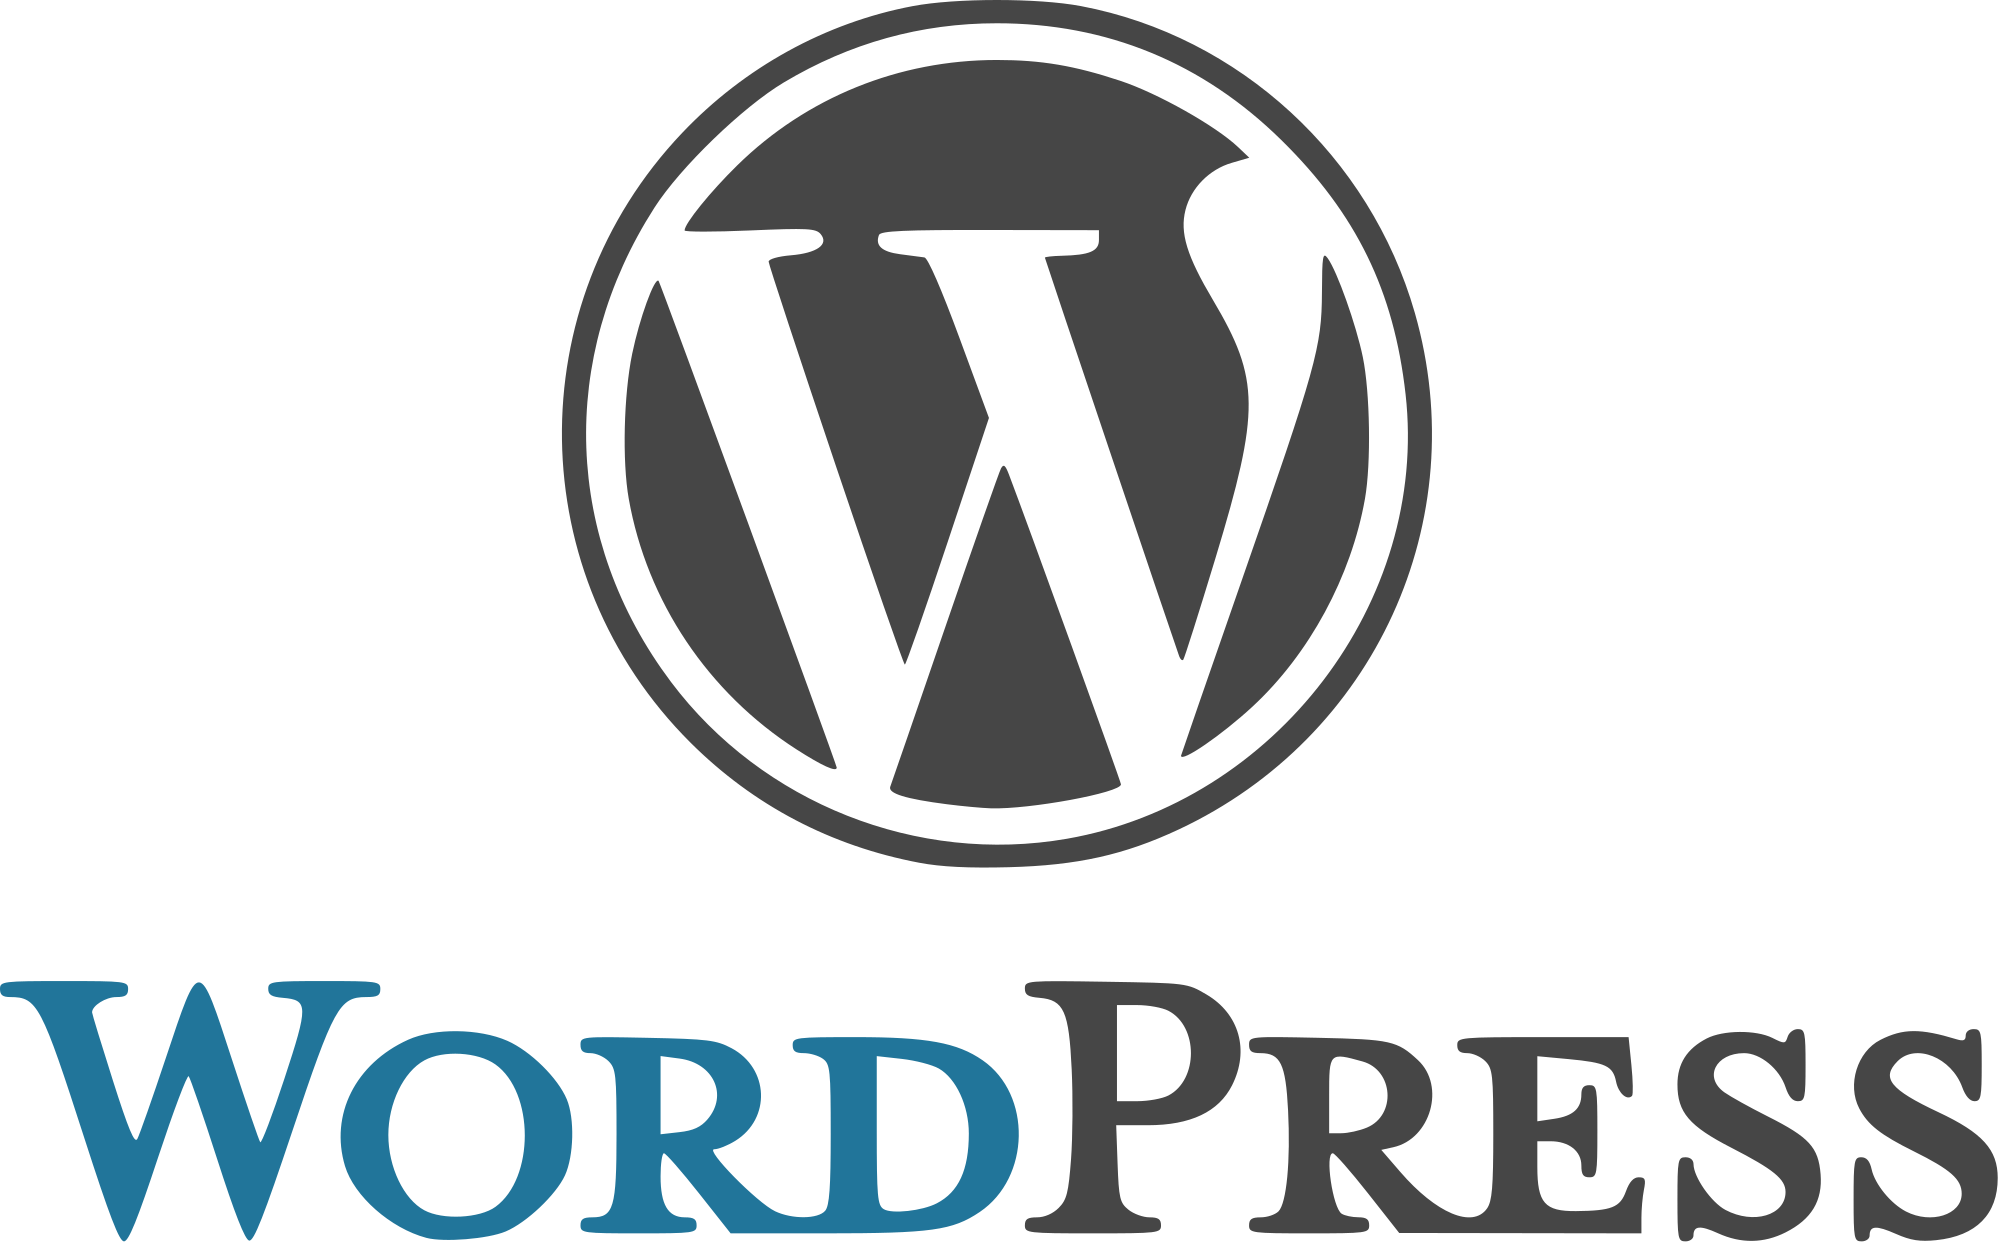 image transparent Using svg wordpress. File wikimedia commons open